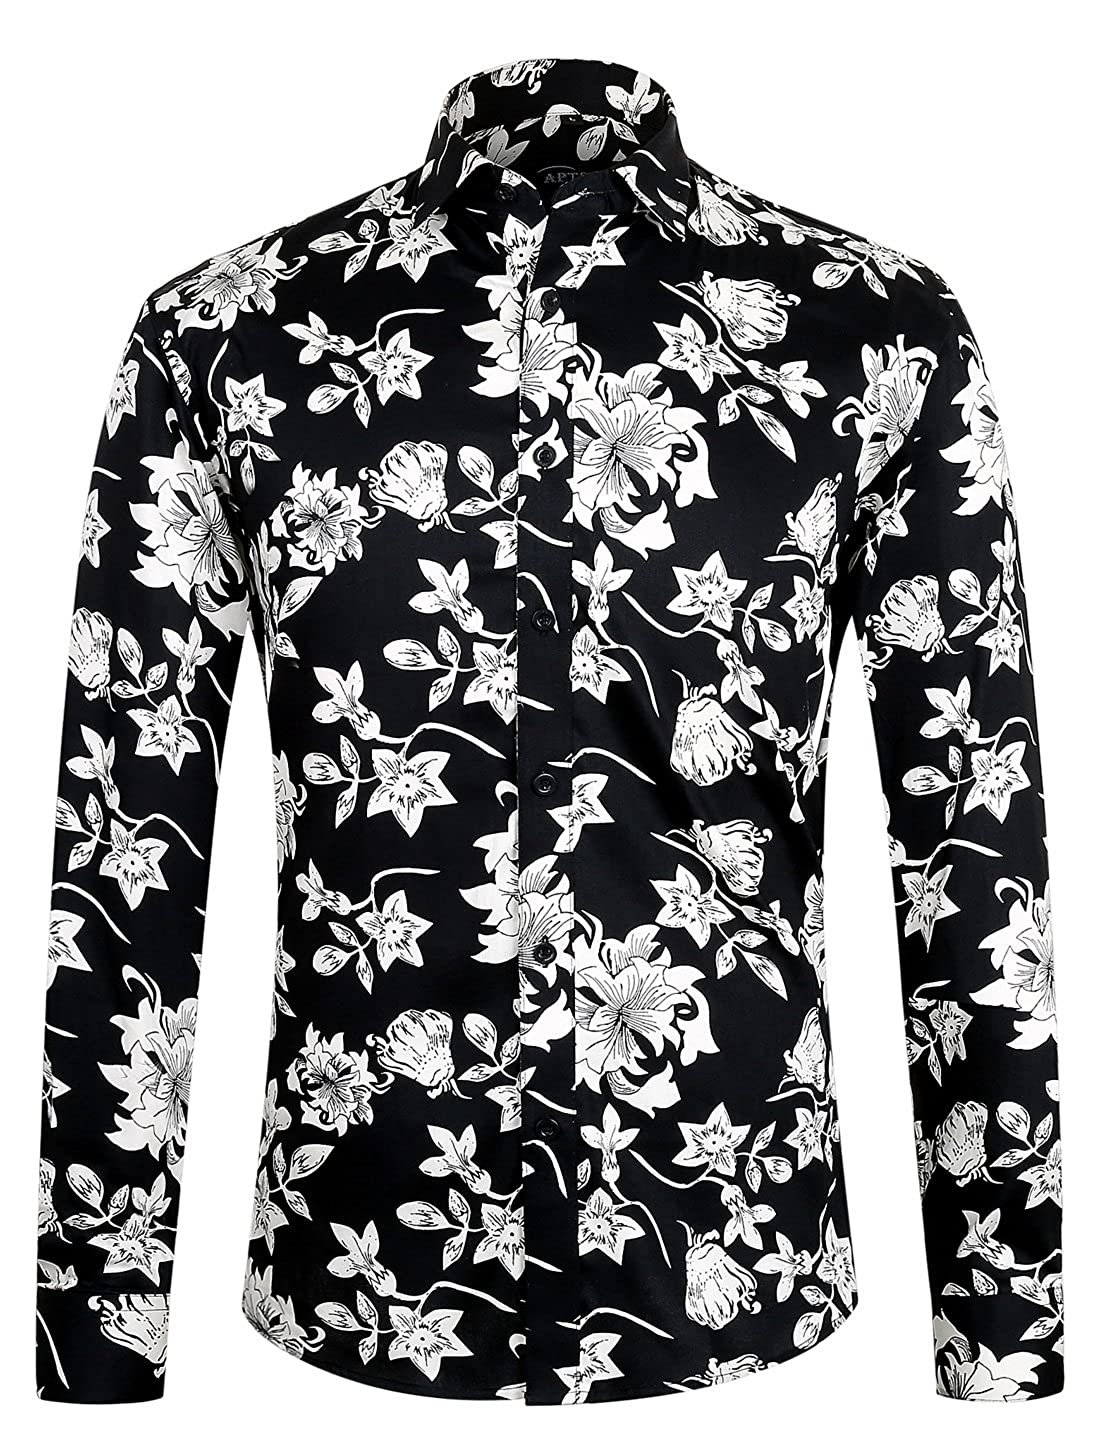 APTRO Men's Cotton Fashion Long Sleeve Floral Shirt